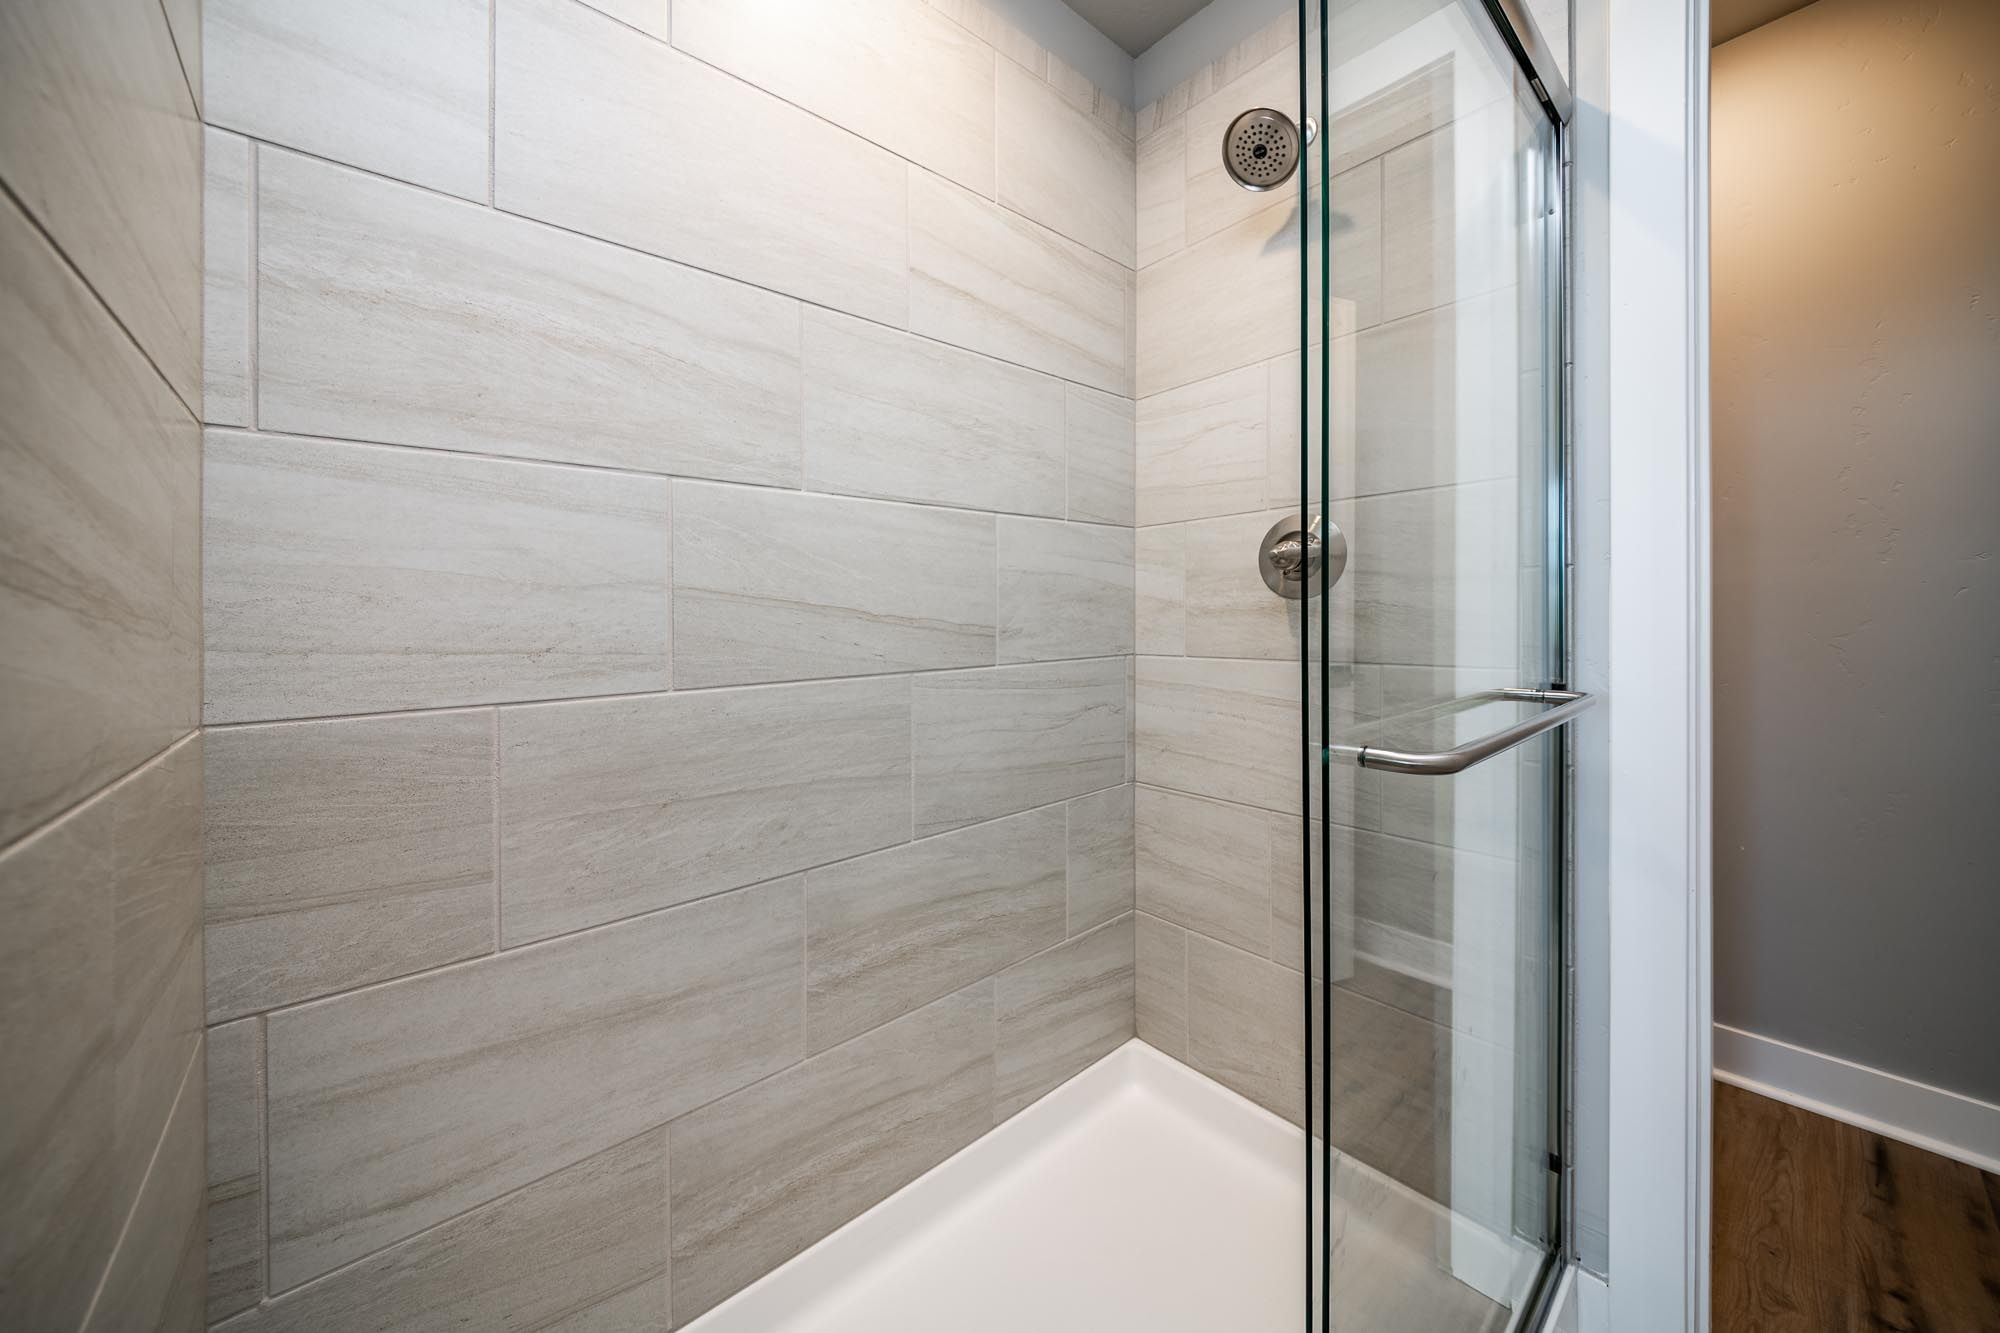 Bathroom featured in the Plan 3 By Solid Homes in Flagstaff, AZ